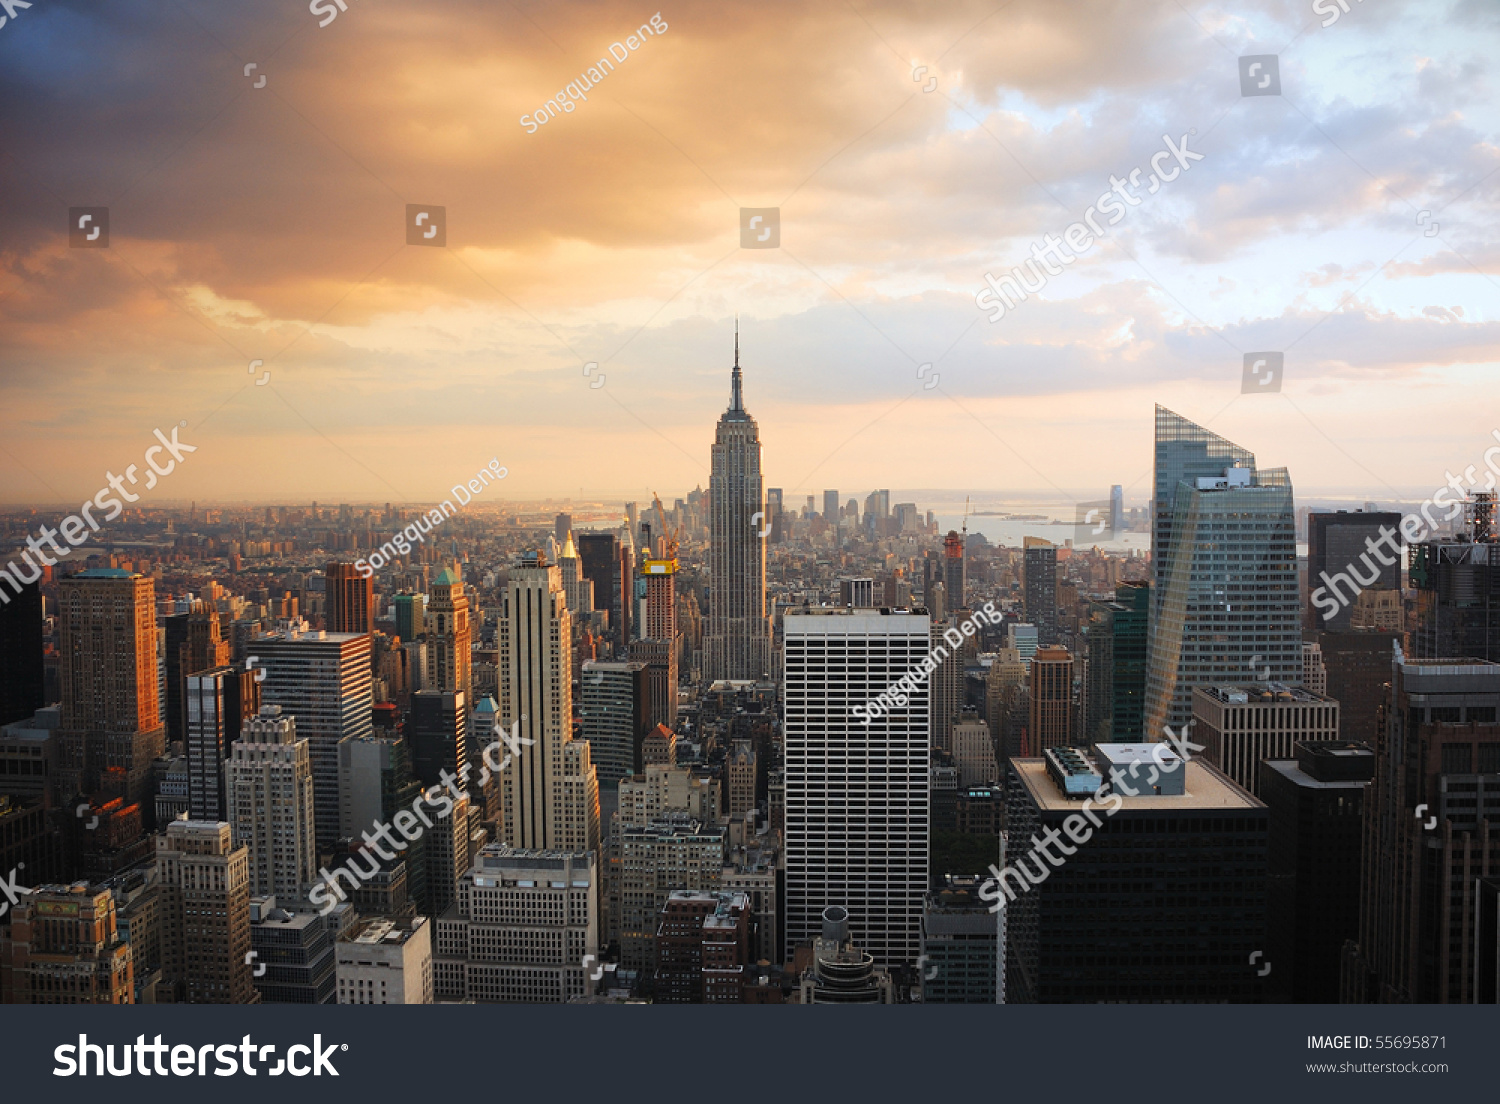 new york city manhattan skyline sunset stock photo 55695871 shutterstock. Black Bedroom Furniture Sets. Home Design Ideas